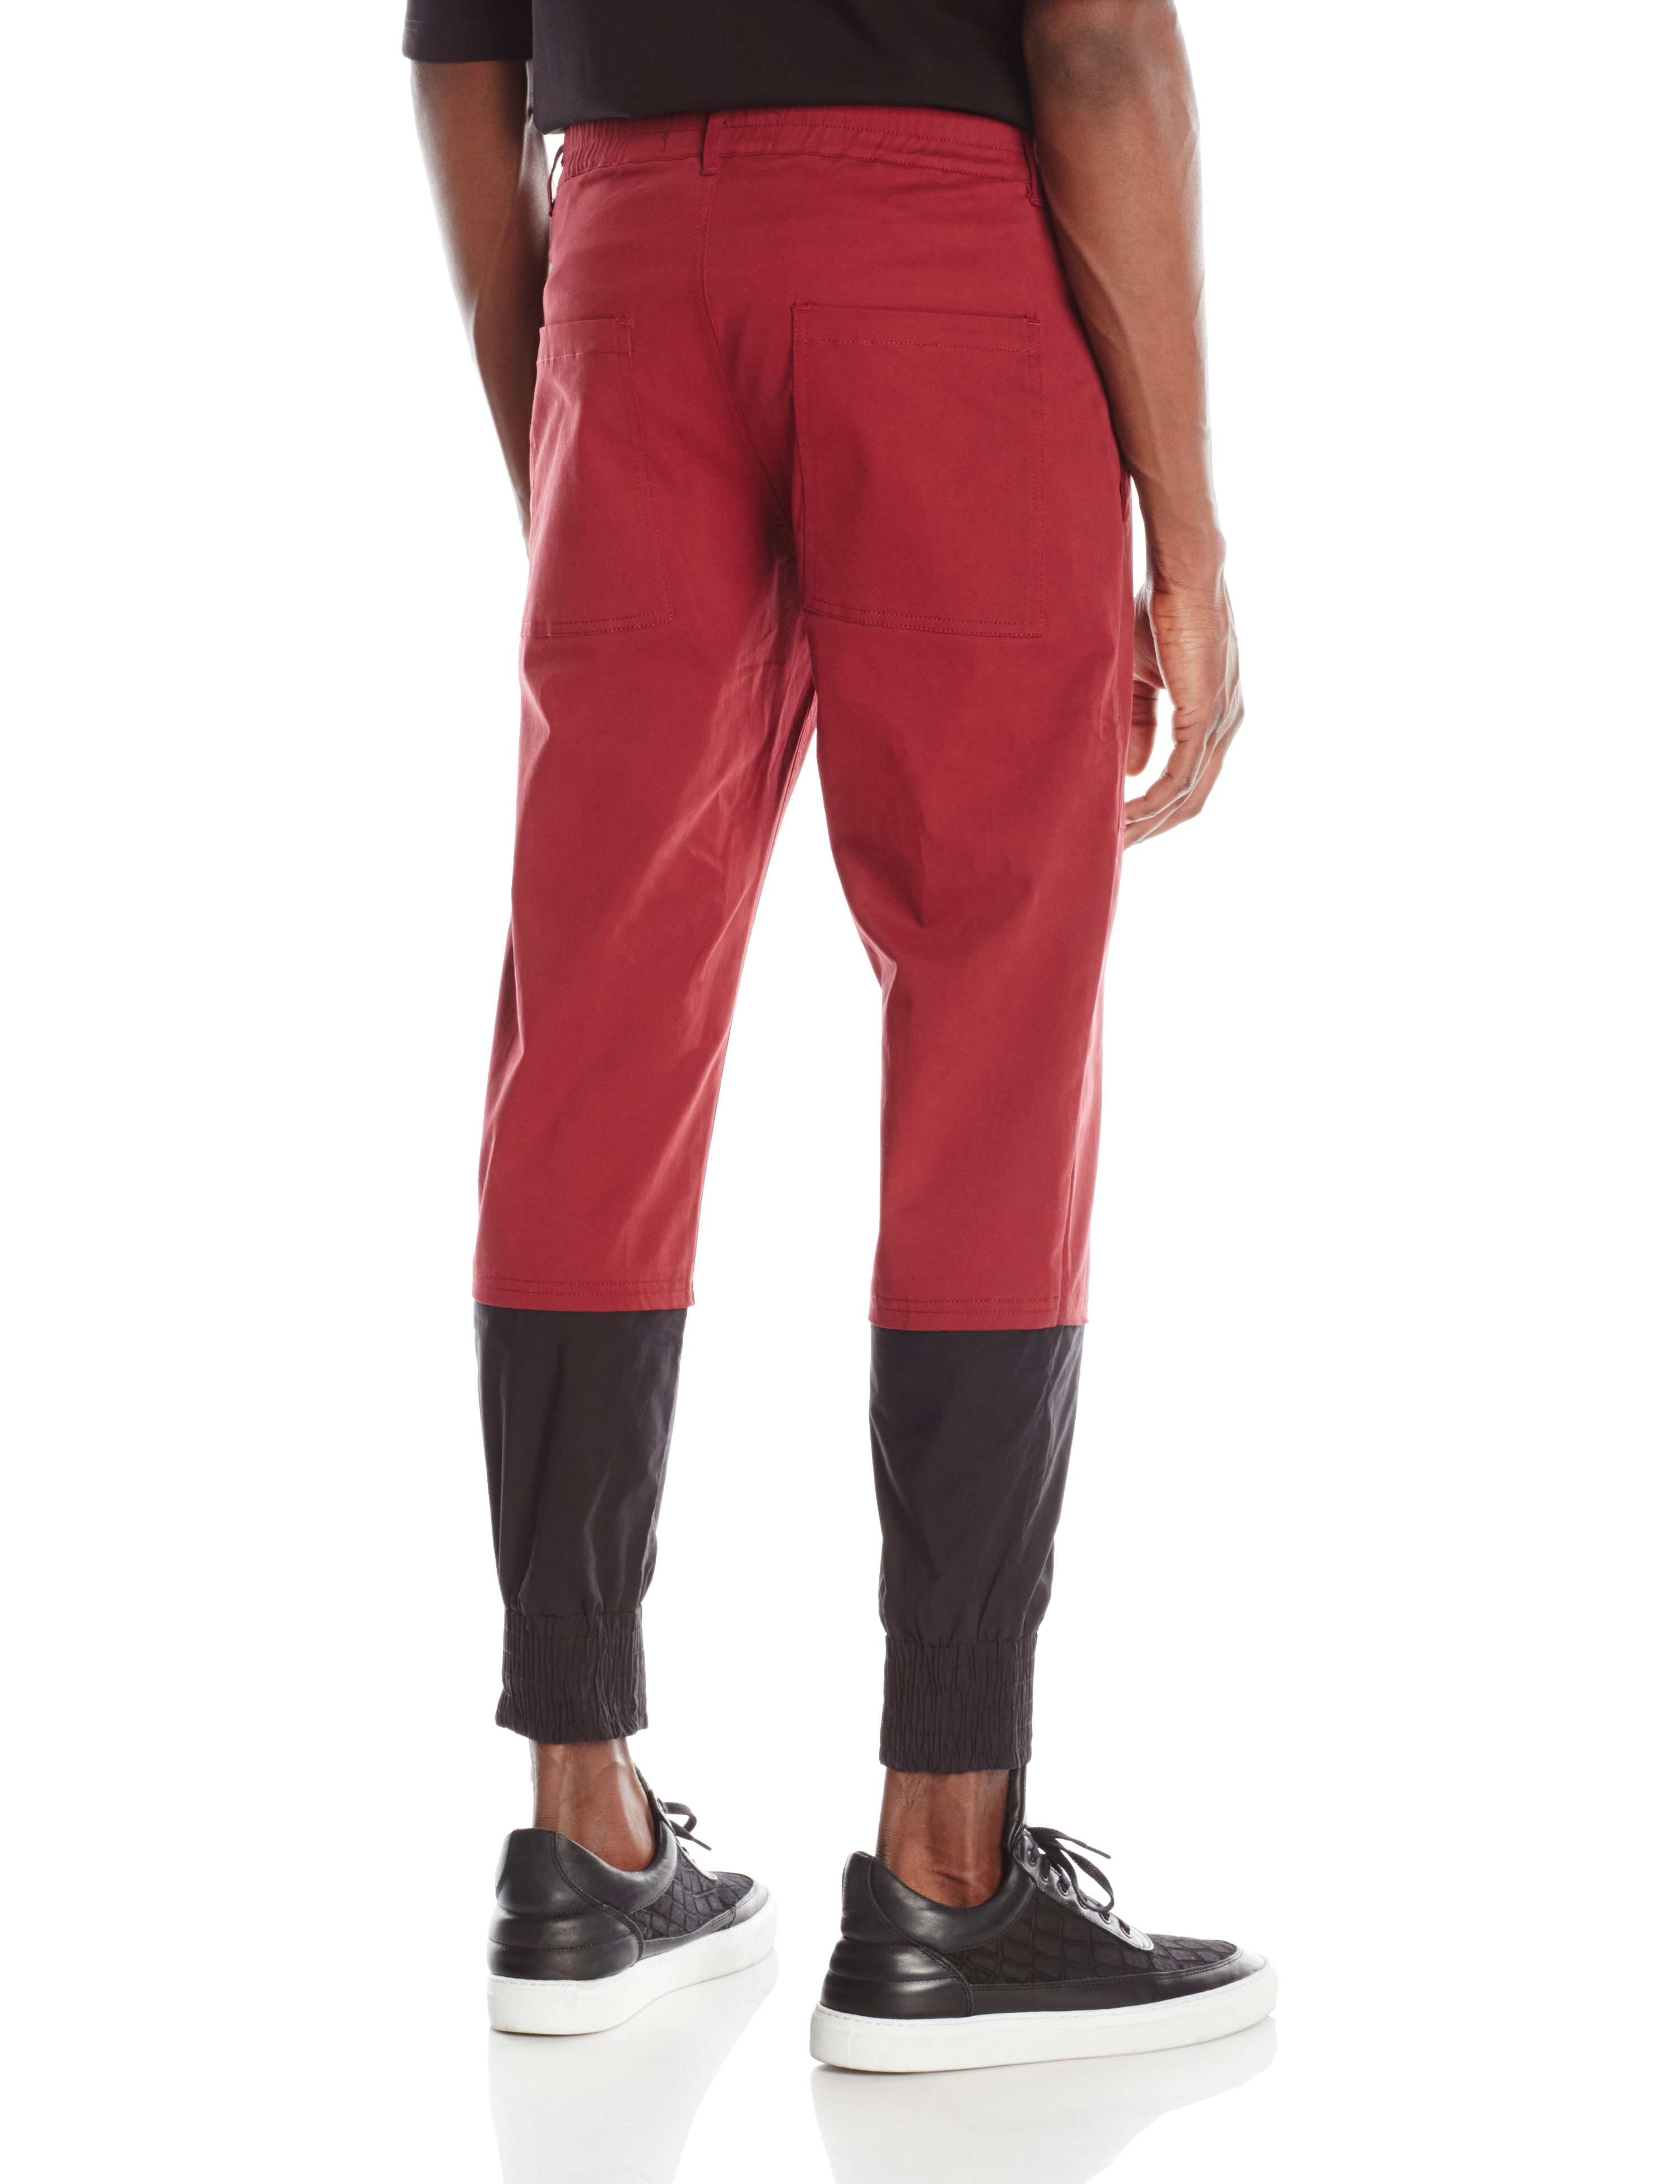 BACK-GLITCH PANT BURGANDY.0293